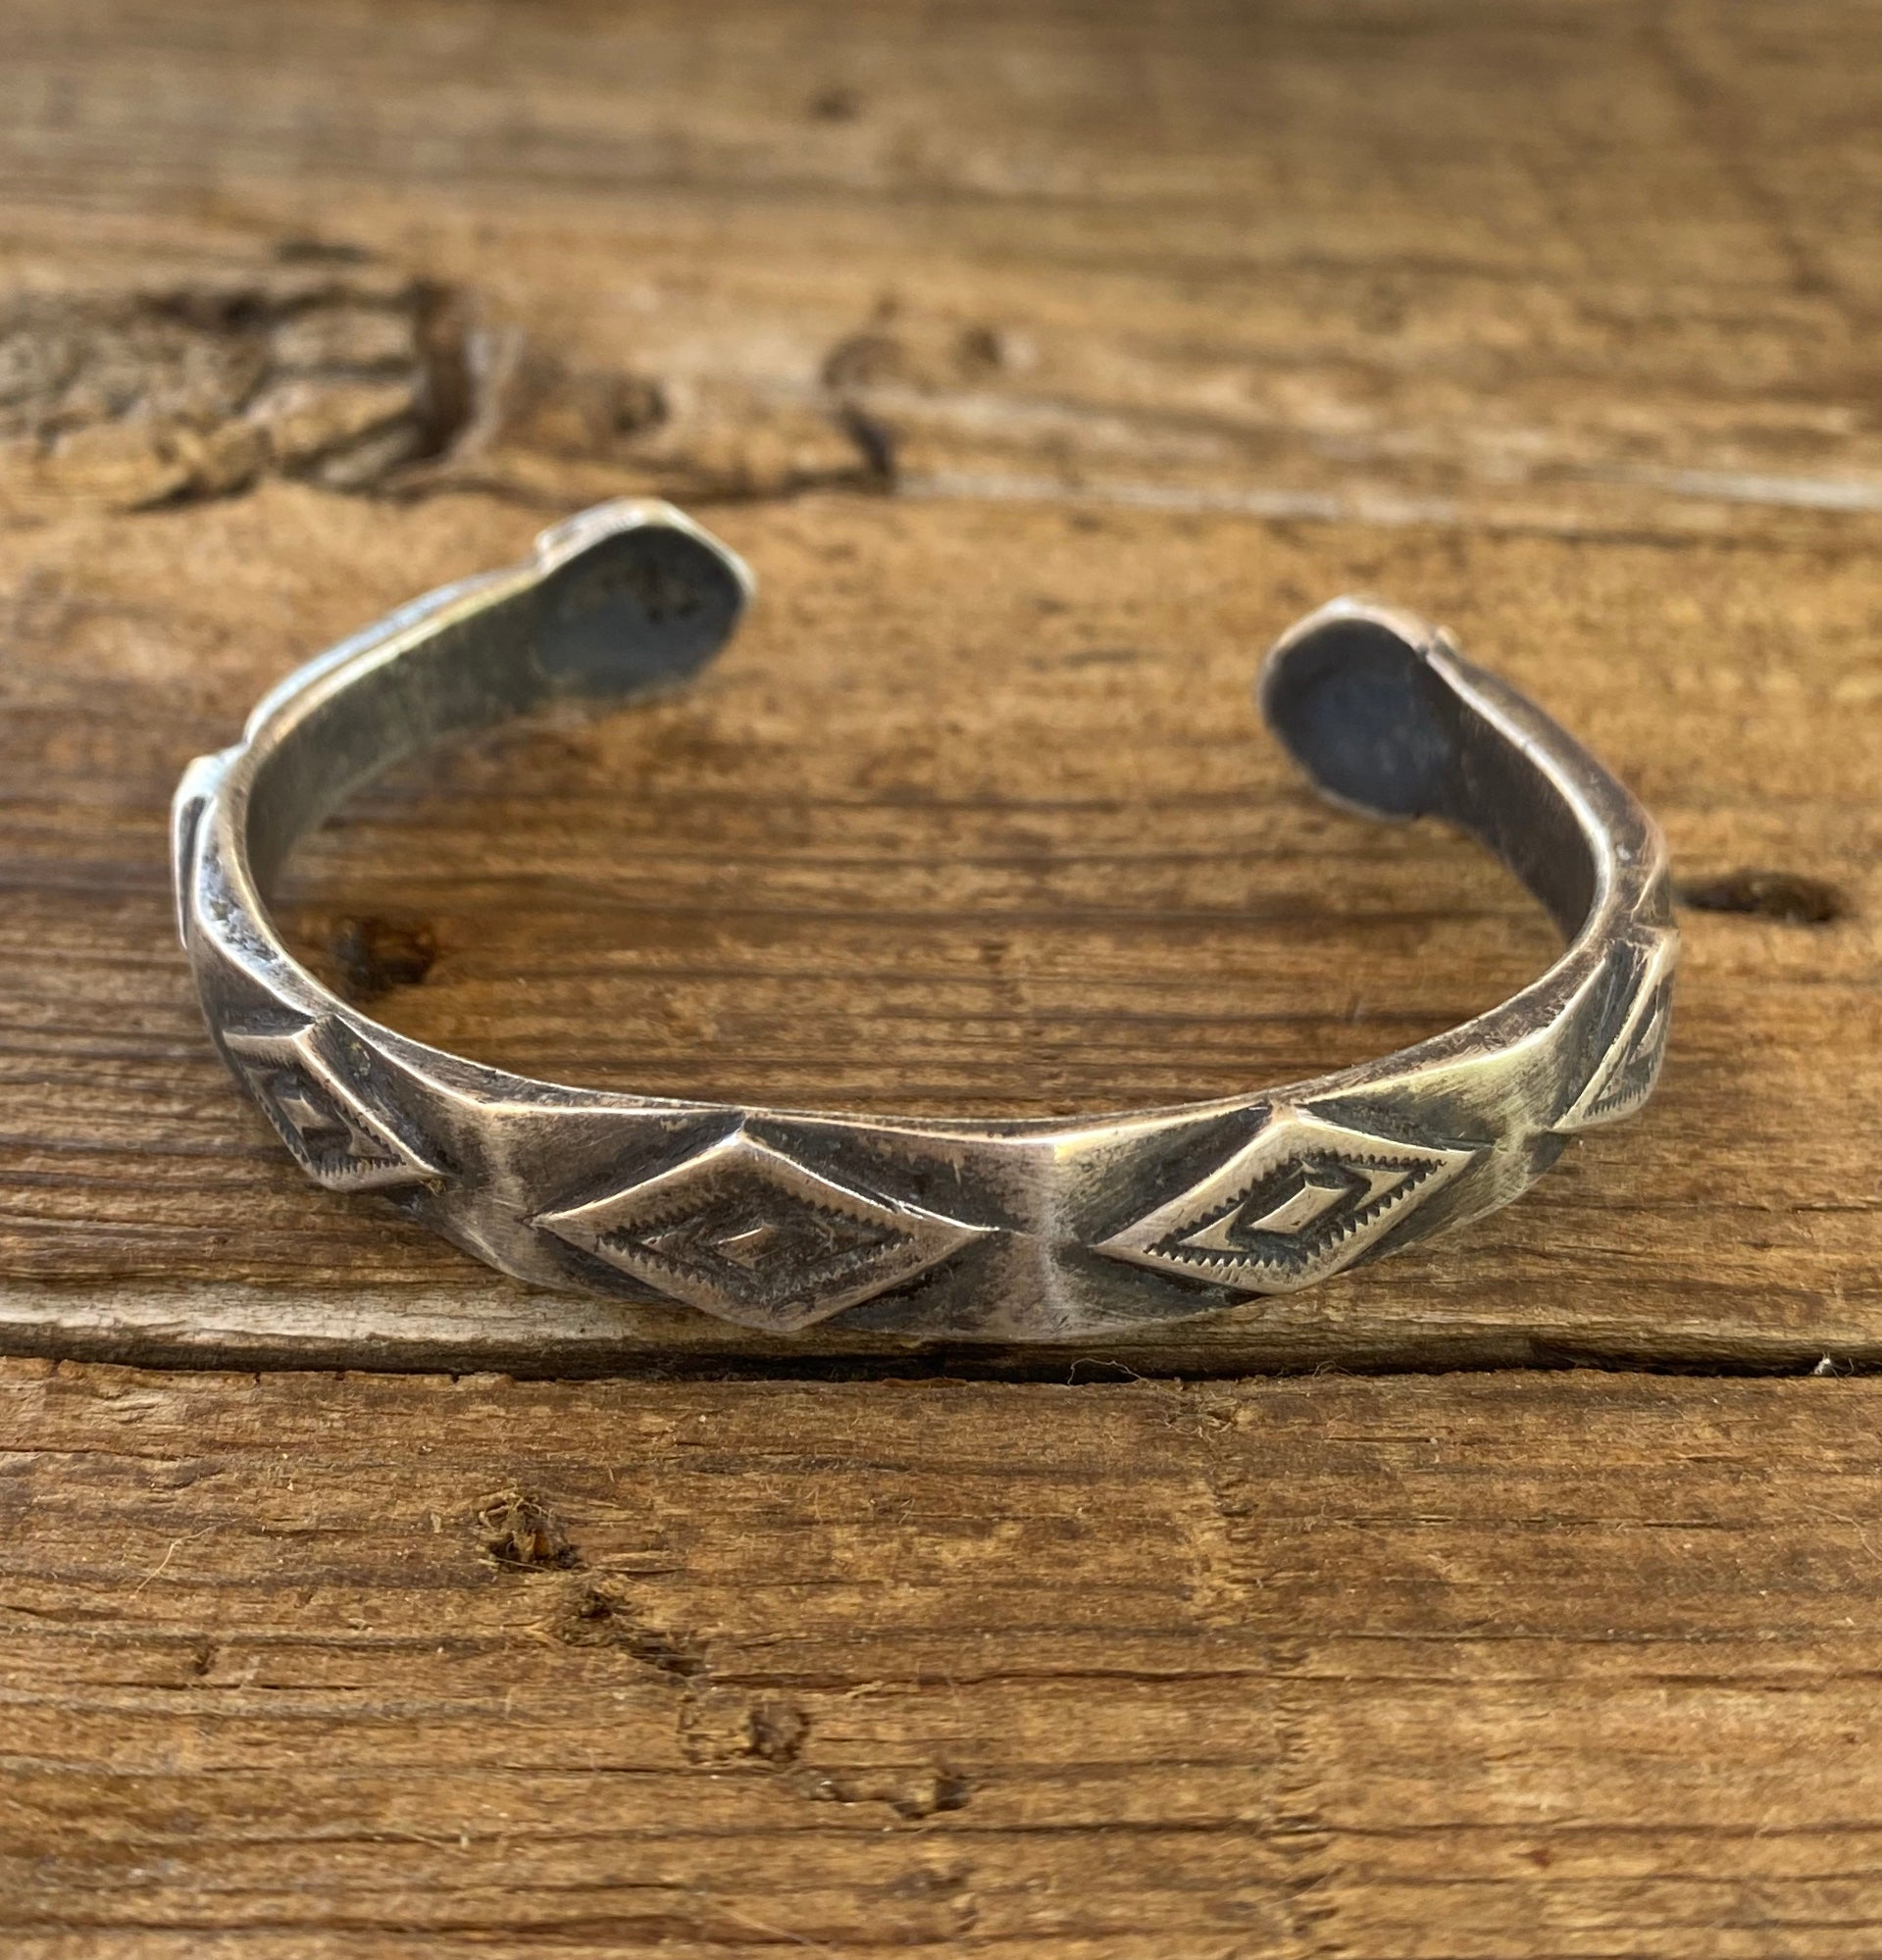 silver bracelet with two rattlesnake heads